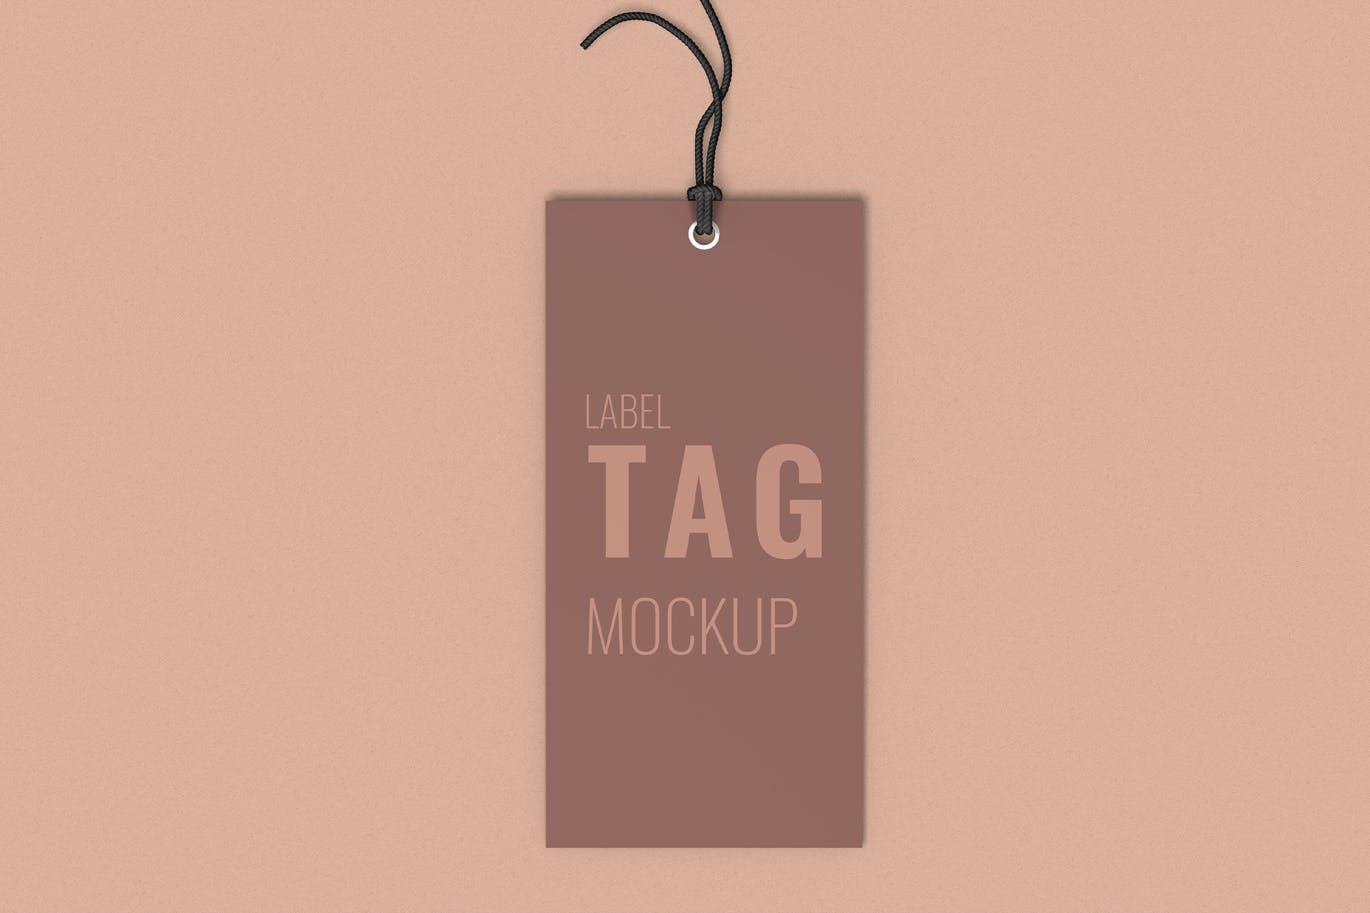 Clothes Label Tag Mockup Top Angle View